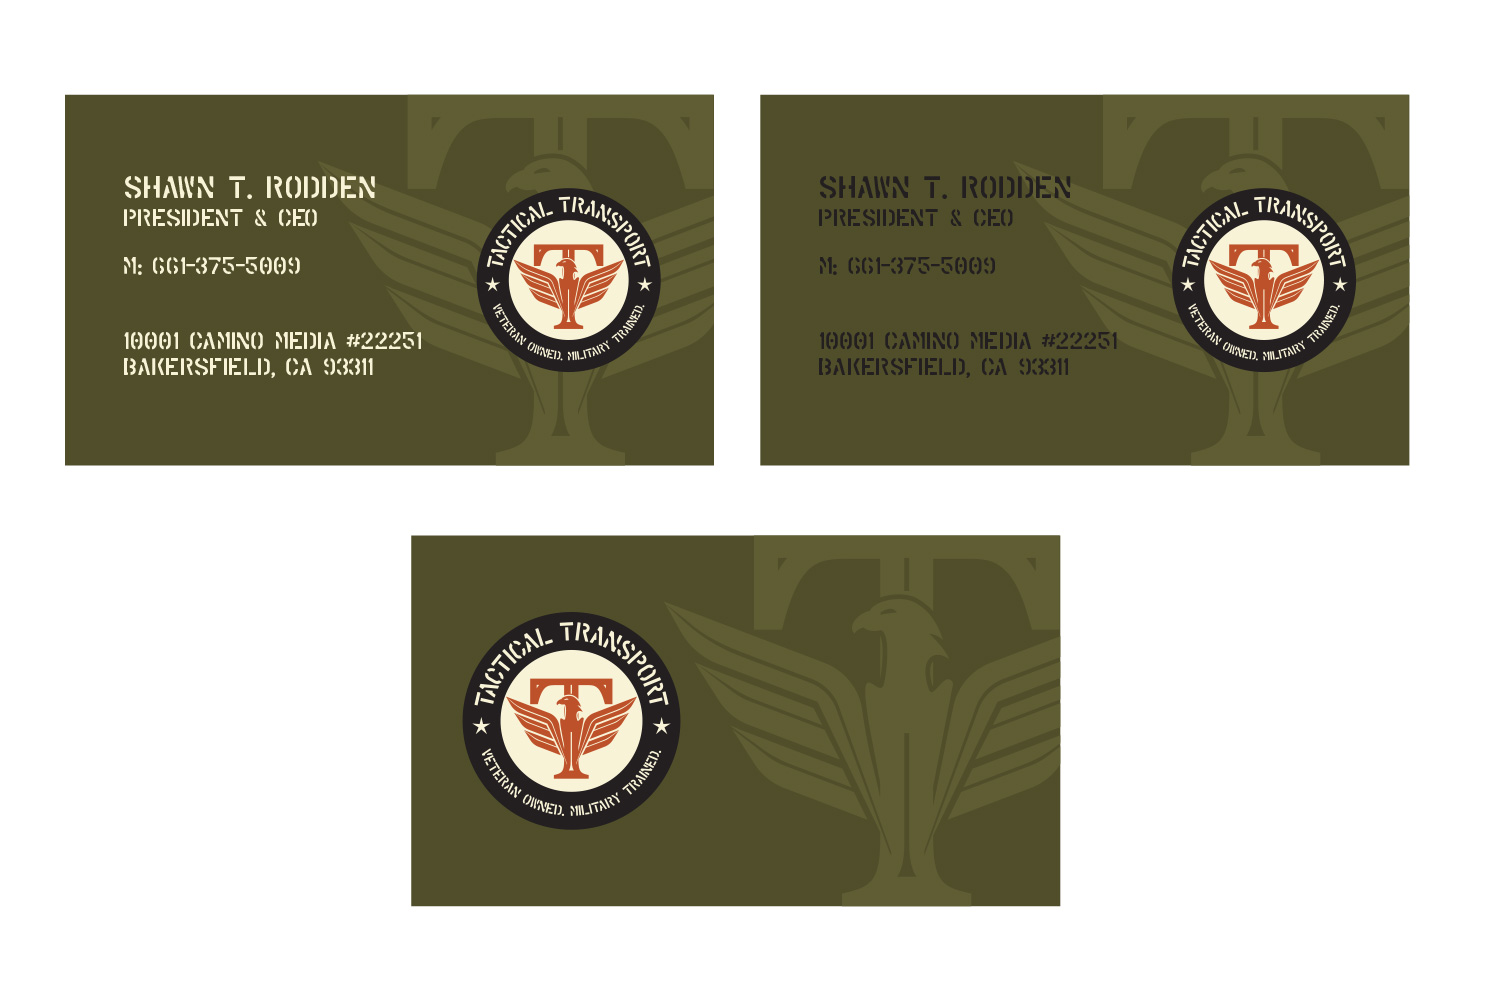 Business card design for tactical transport by b74design design business card design by b74design for tactical transport design 19624312 reheart Images